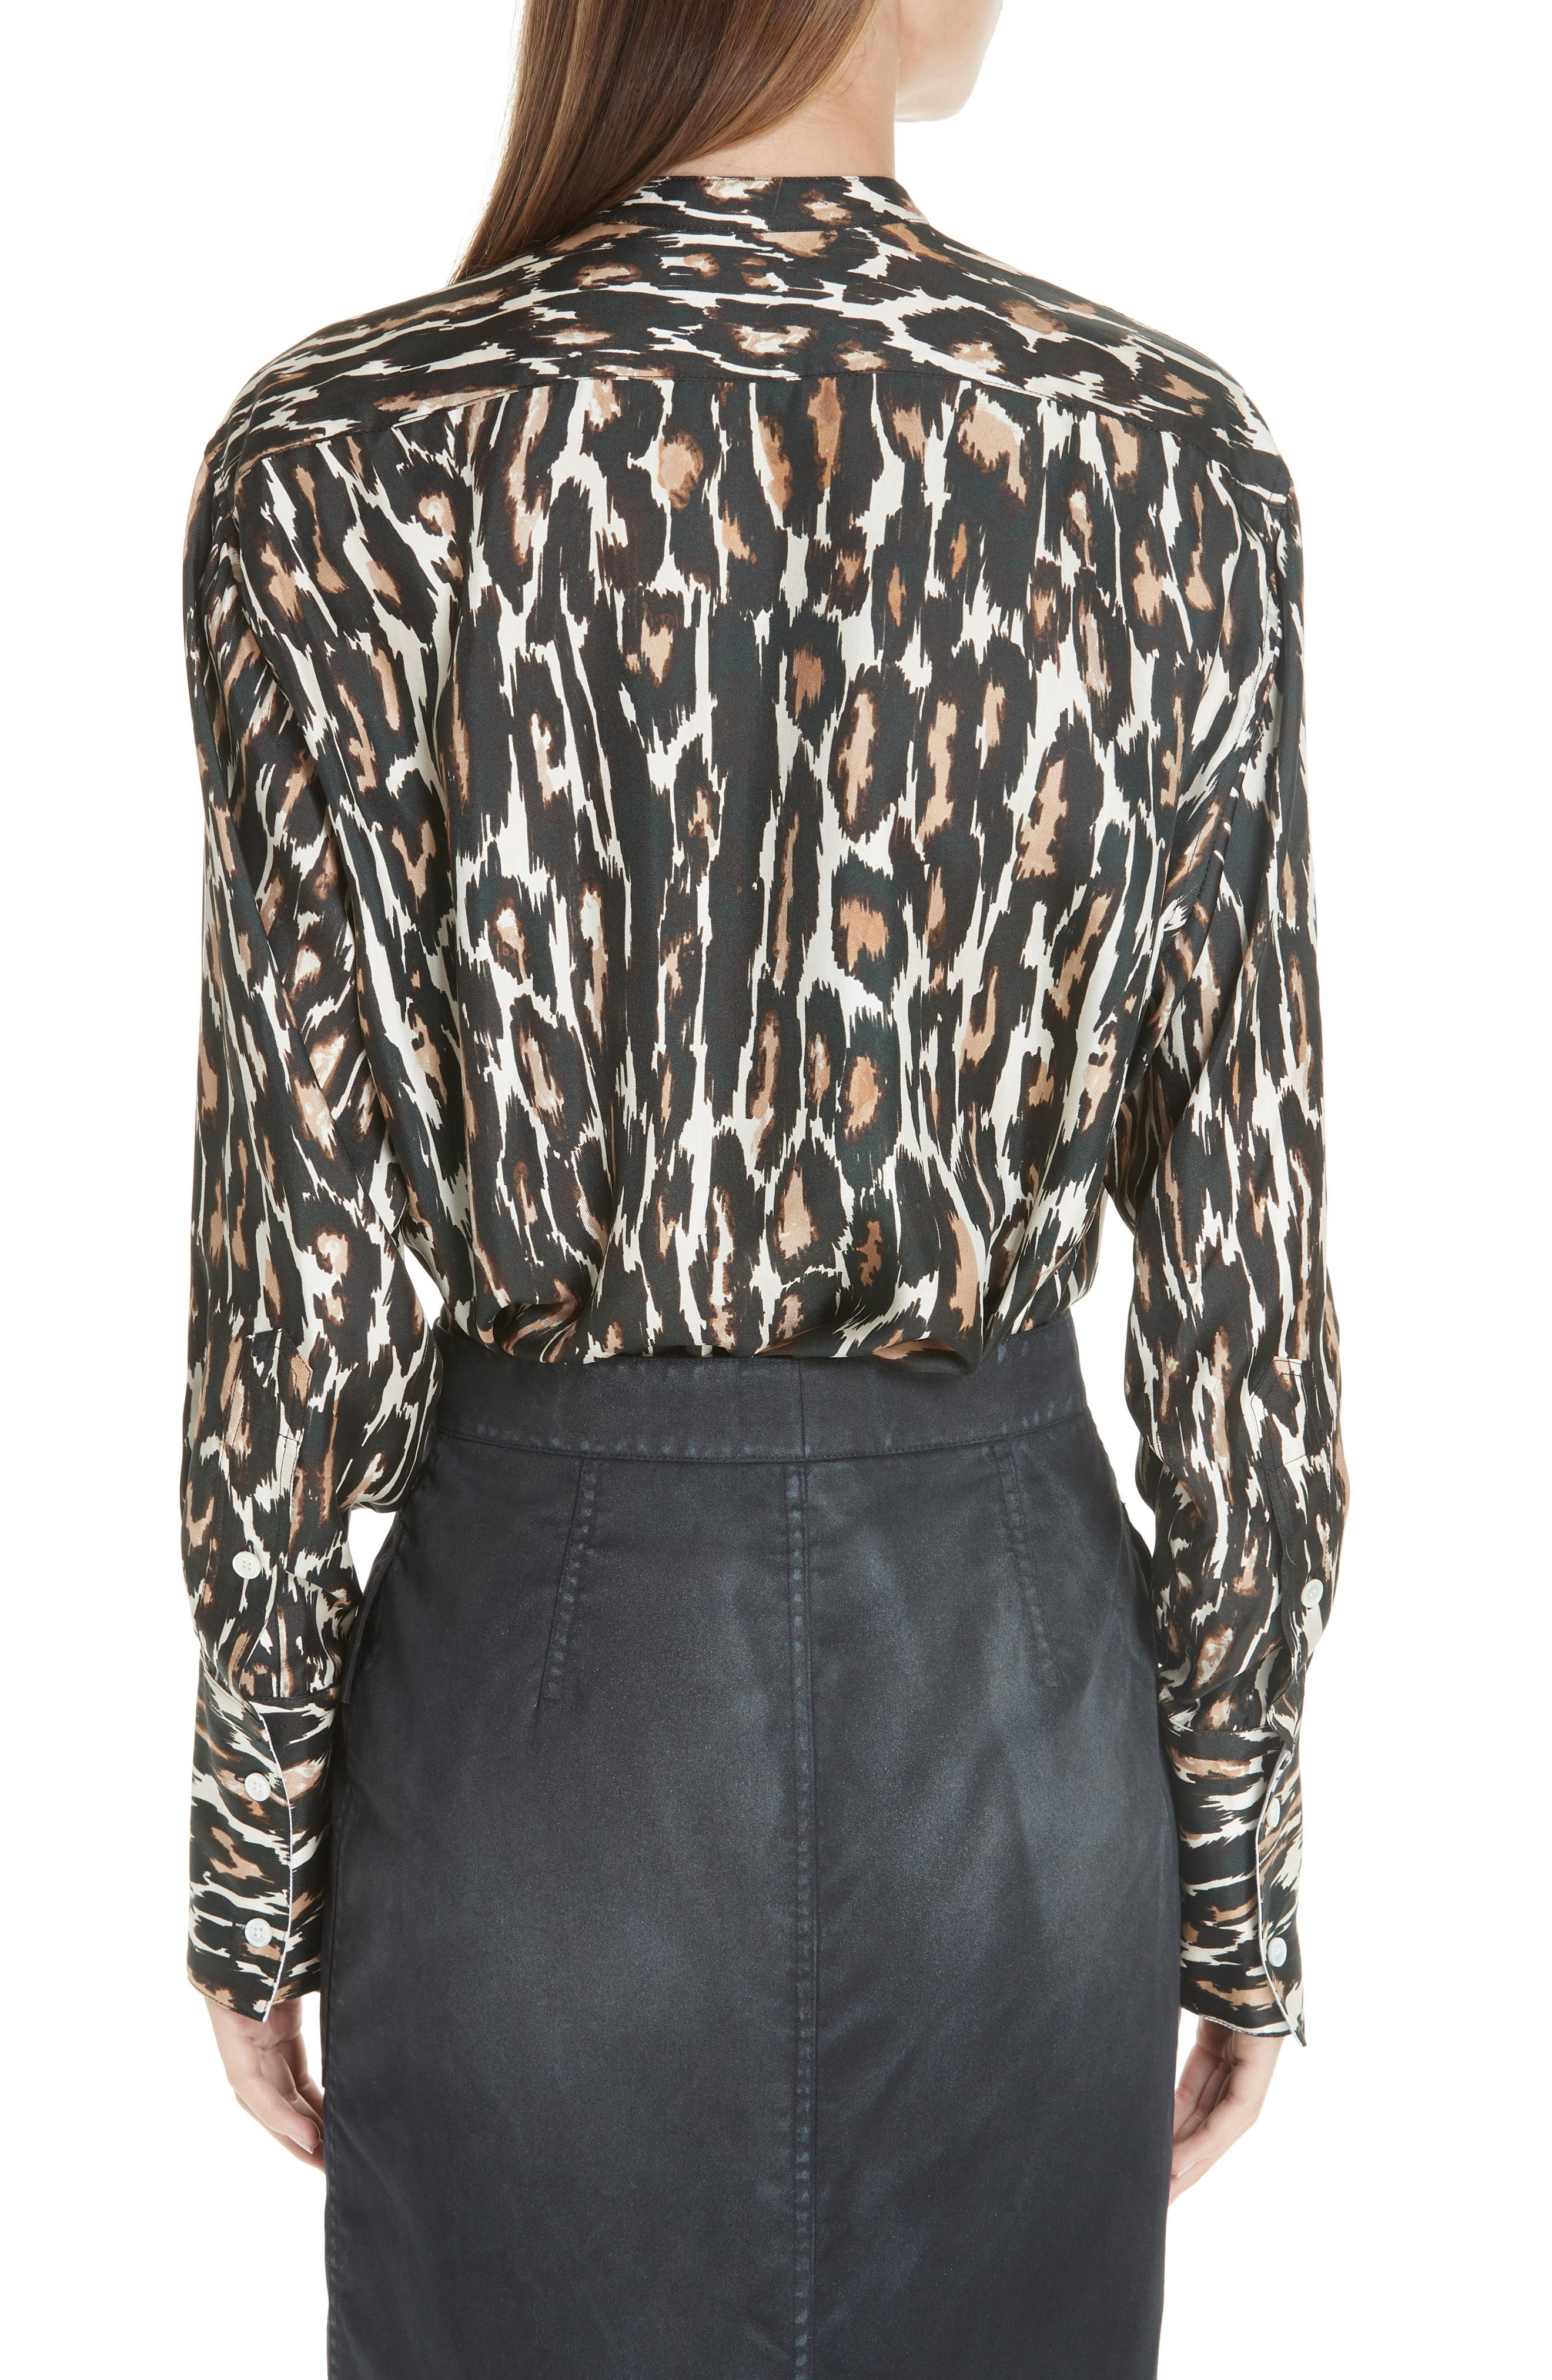 Leopard Print Silk Twill Blouse,                             Alternate thumbnail 2, color,                             IVORY BROWN BLACK BEIGE